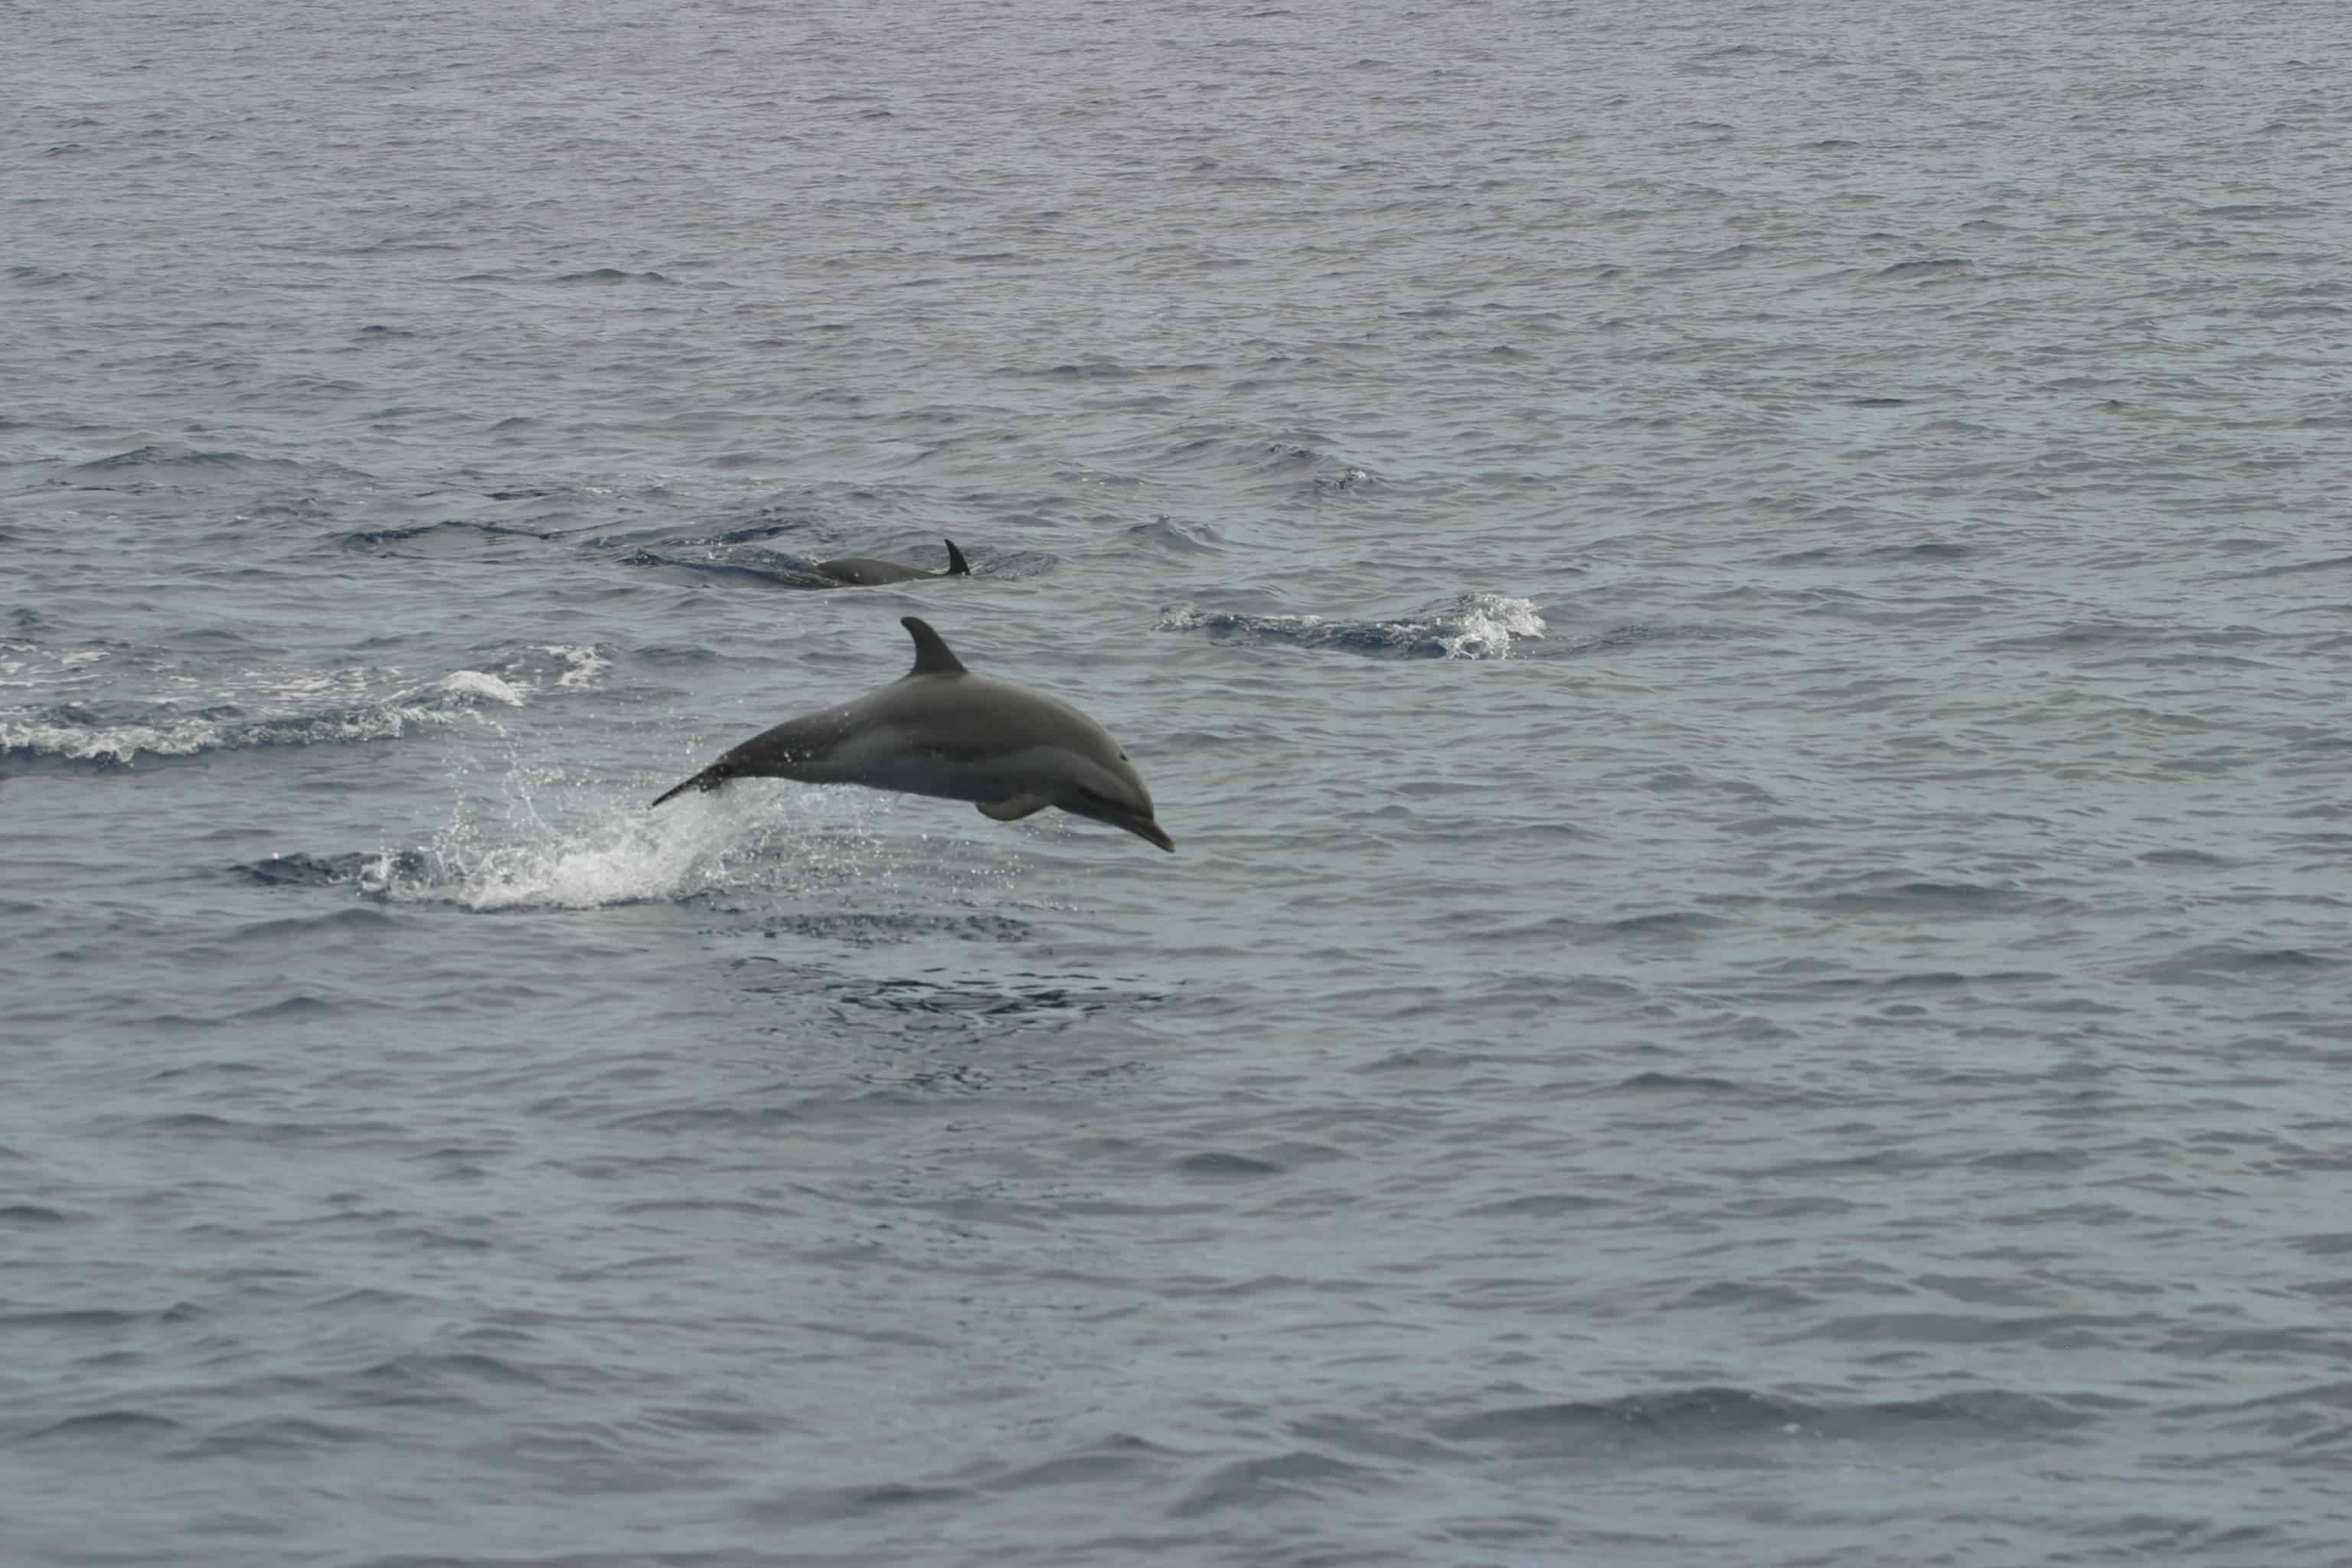 Pantropical spotted dolphins at St Helena. Copyright: Dr Mike Pienkowski